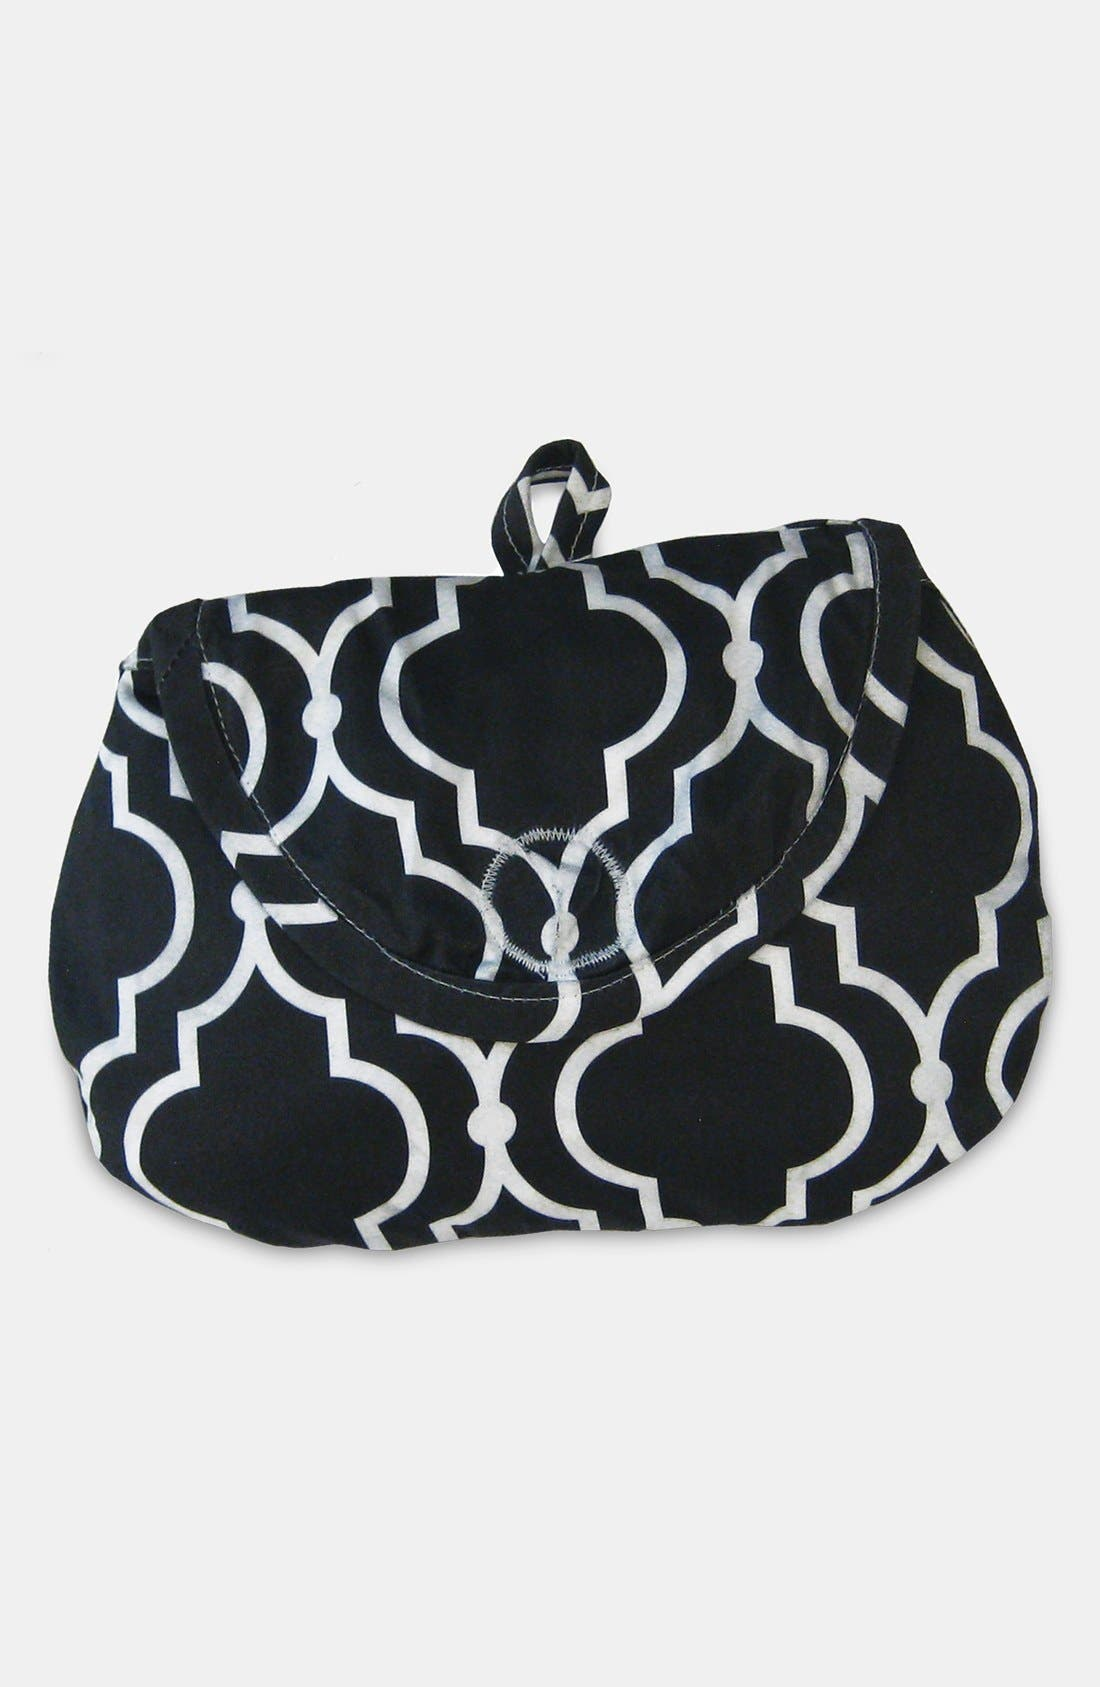 BOPPY,                             Nursing Cover,                             Alternate thumbnail 2, color,                             001